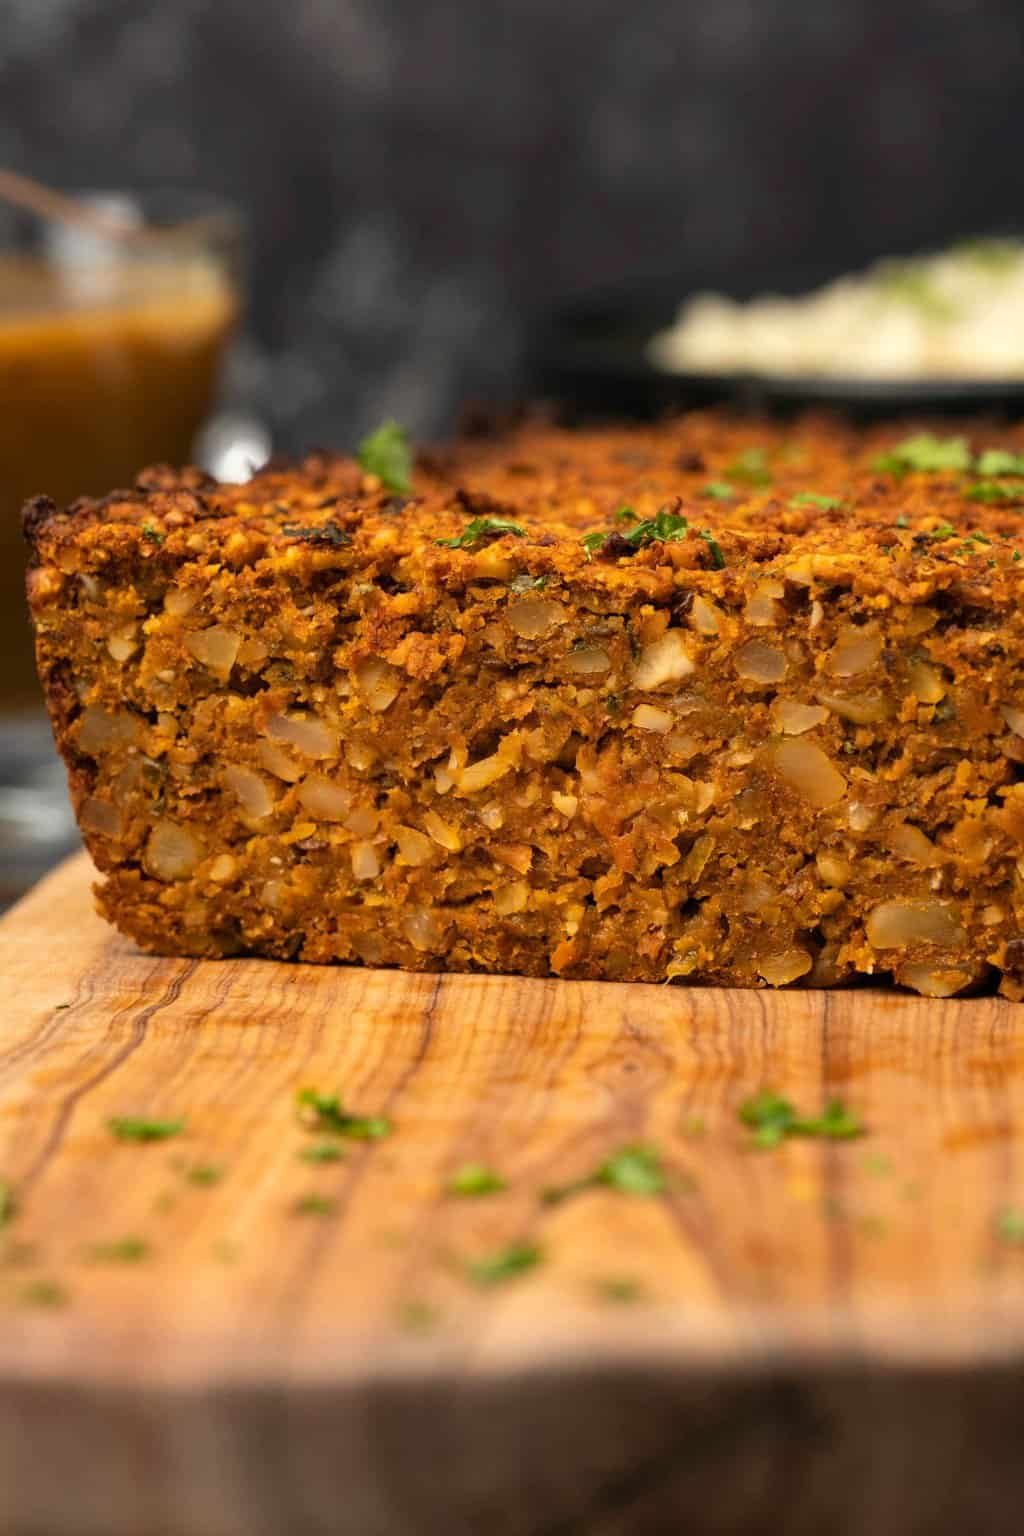 Nut roast with chopped parsley on a wooden board.